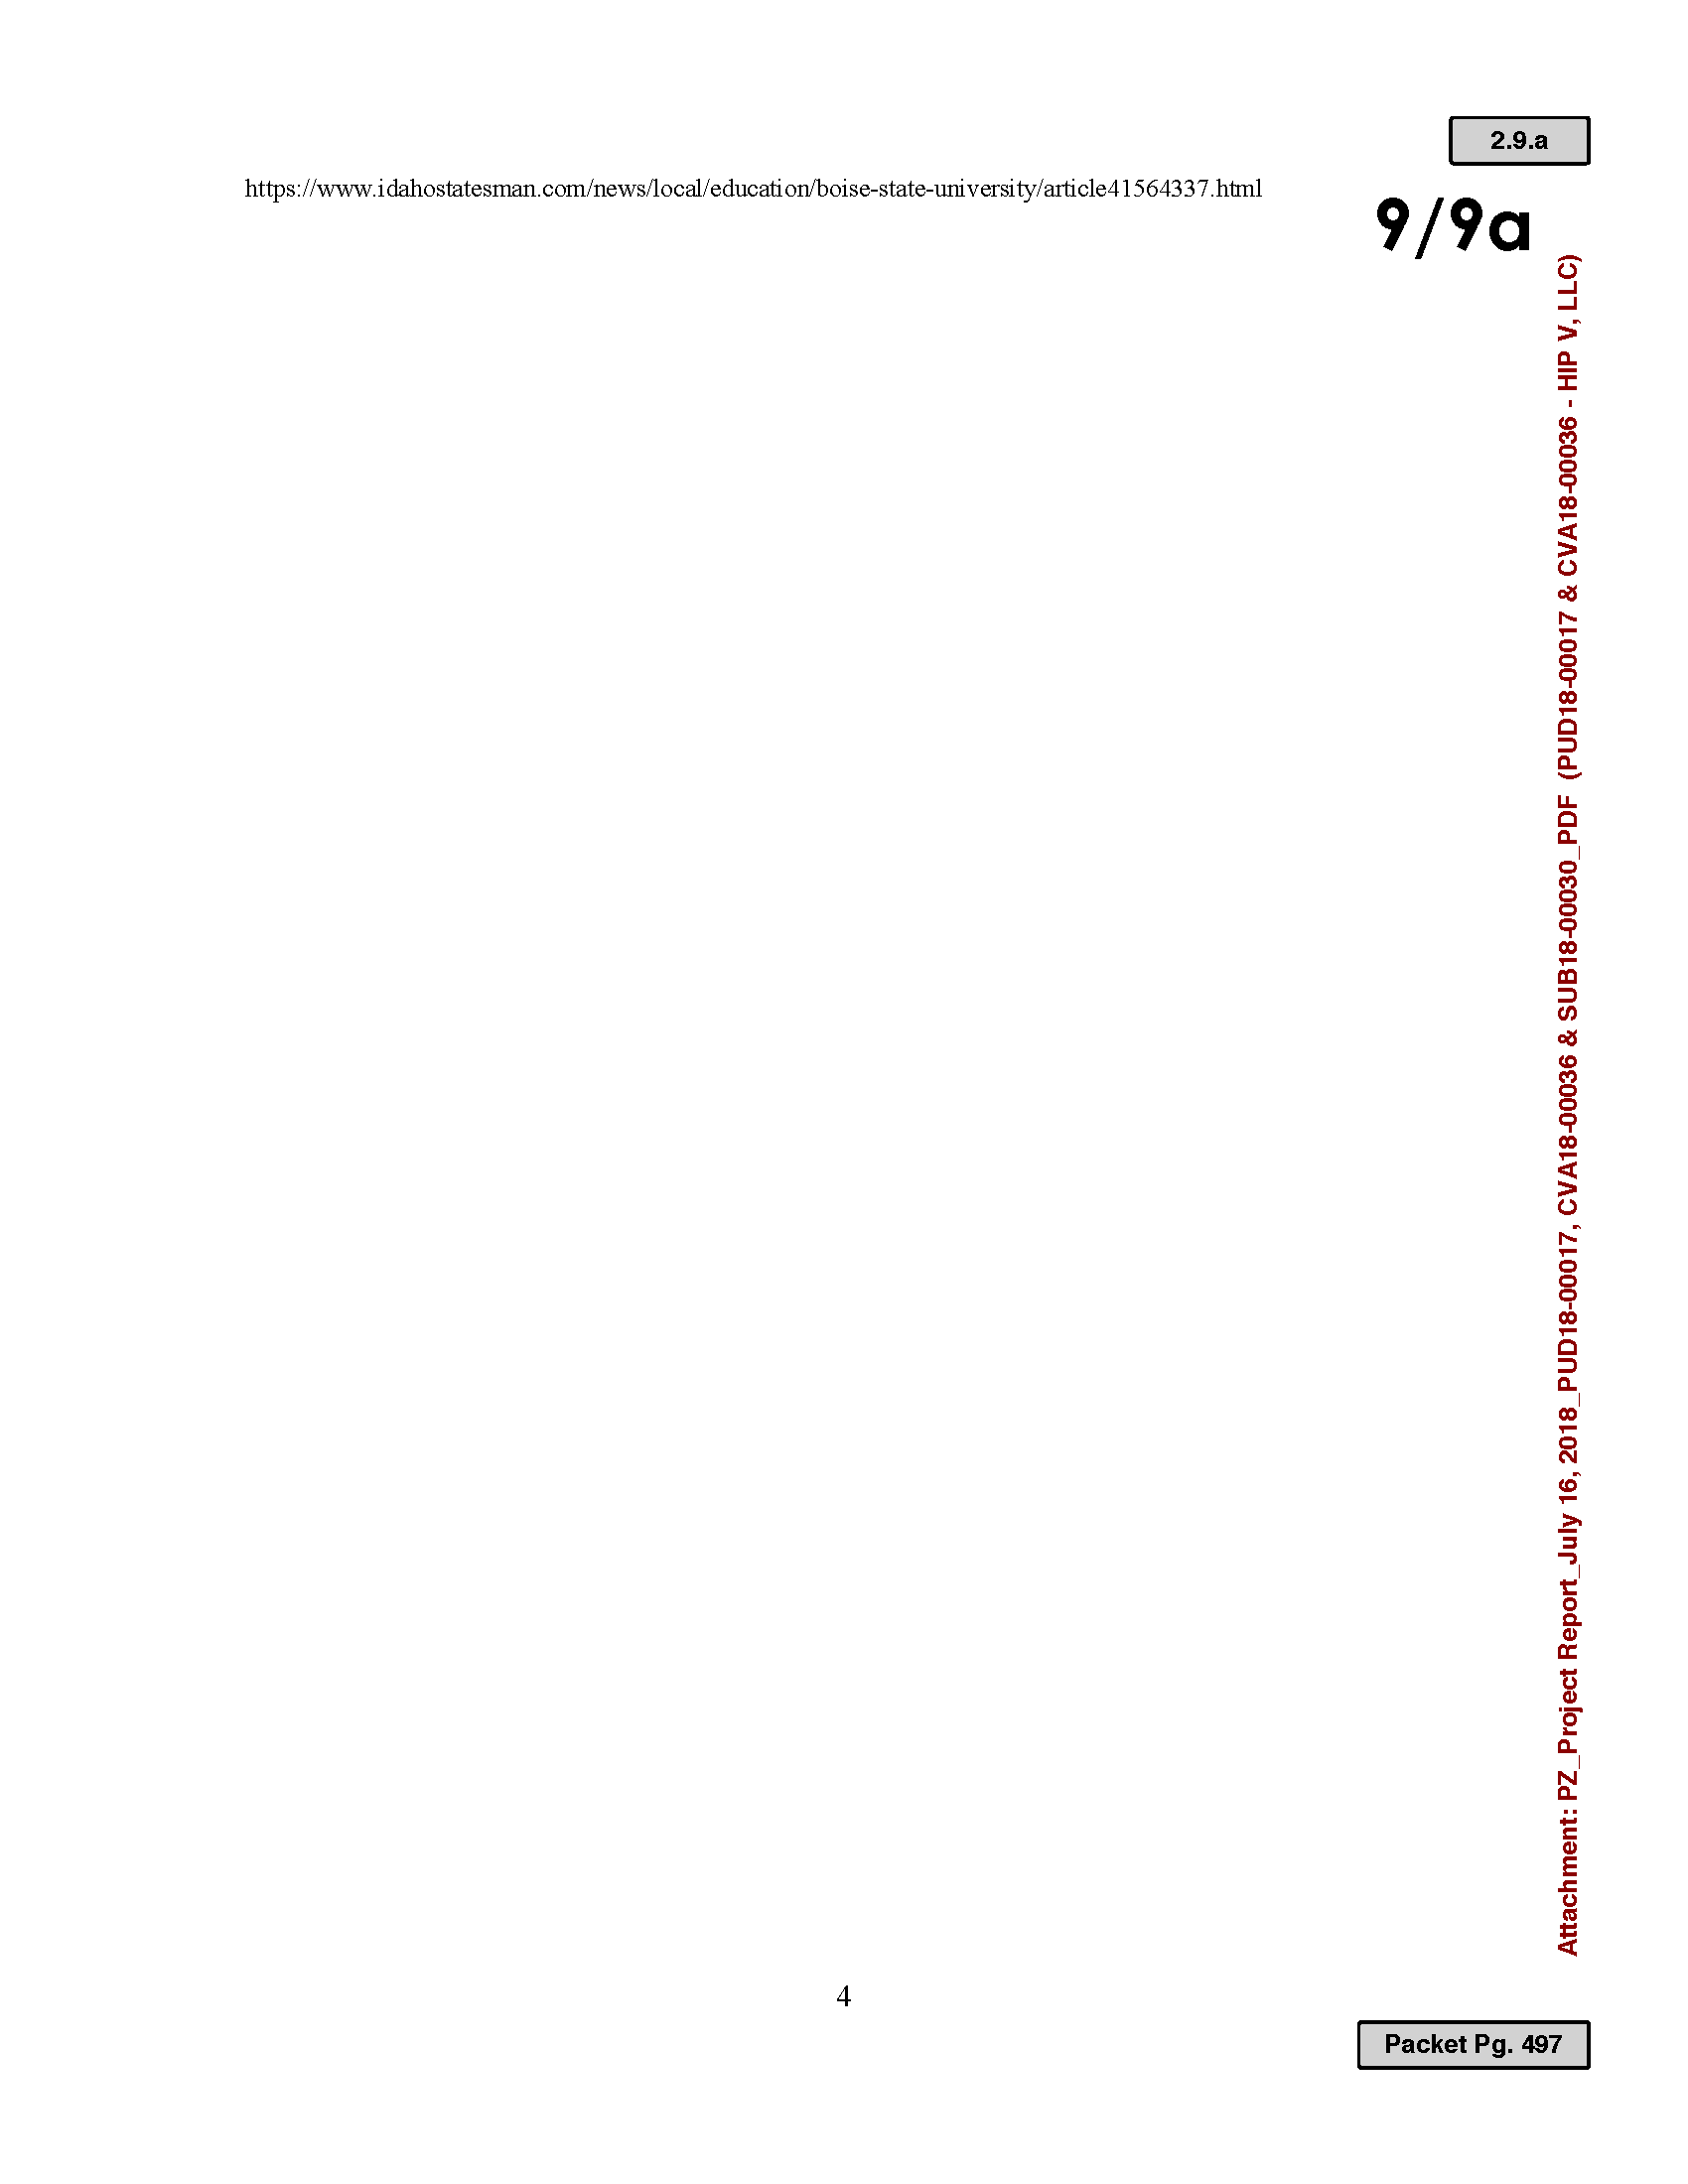 p&z packet against_Page_497.png